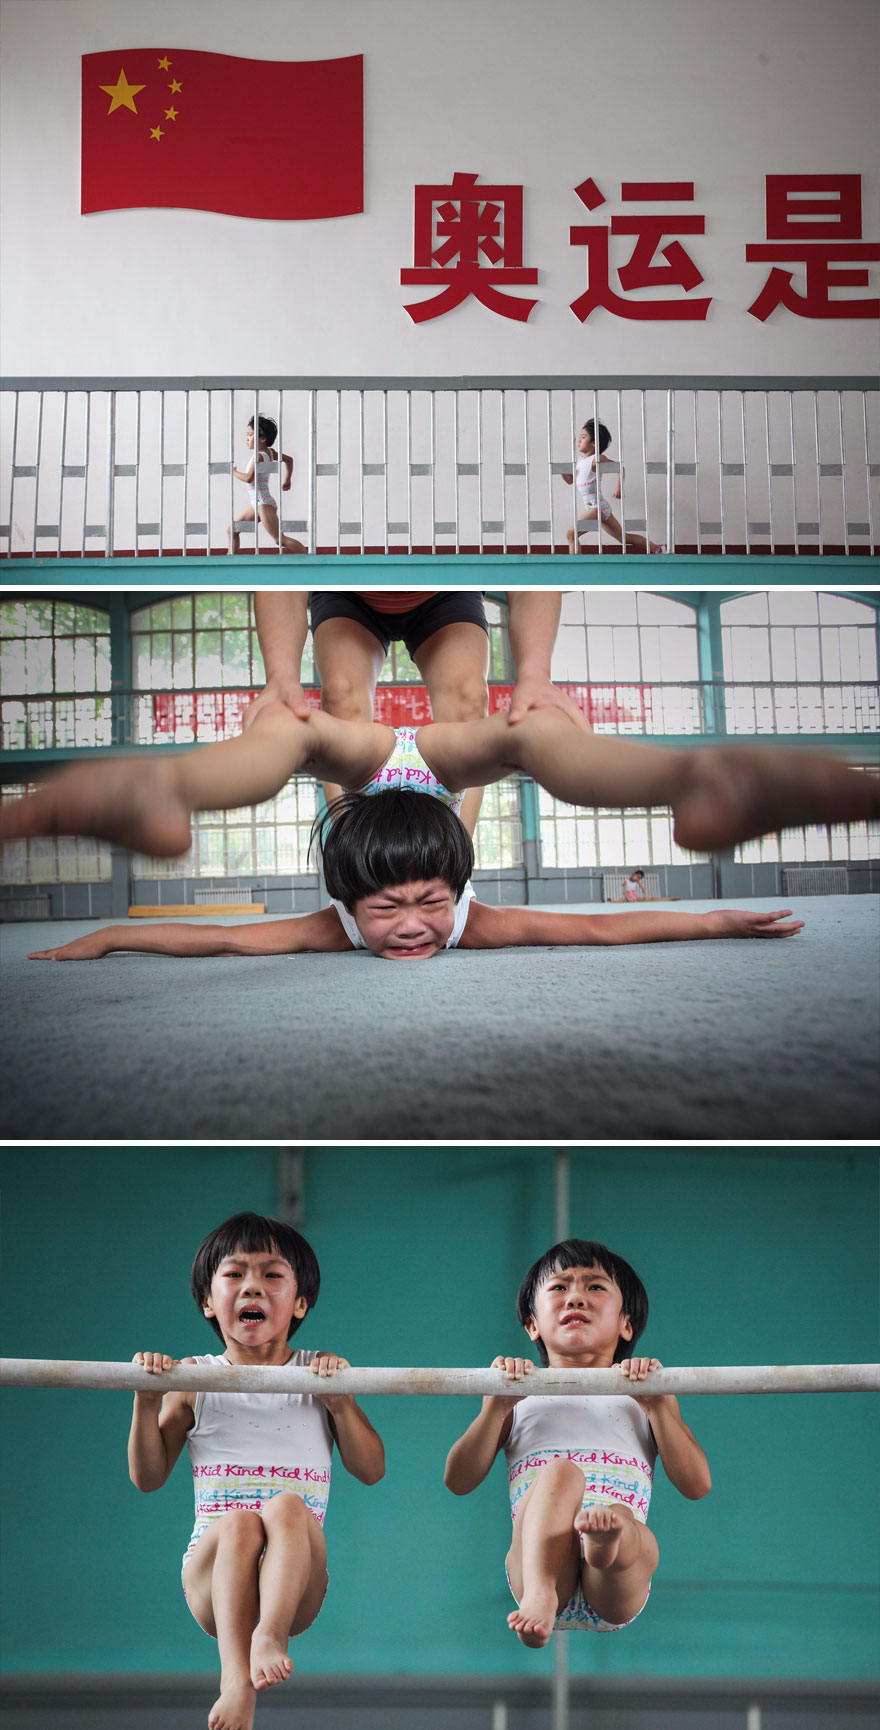 The Twins' Gymnastics Dream, China (3rd Place In Story-Telling Category)